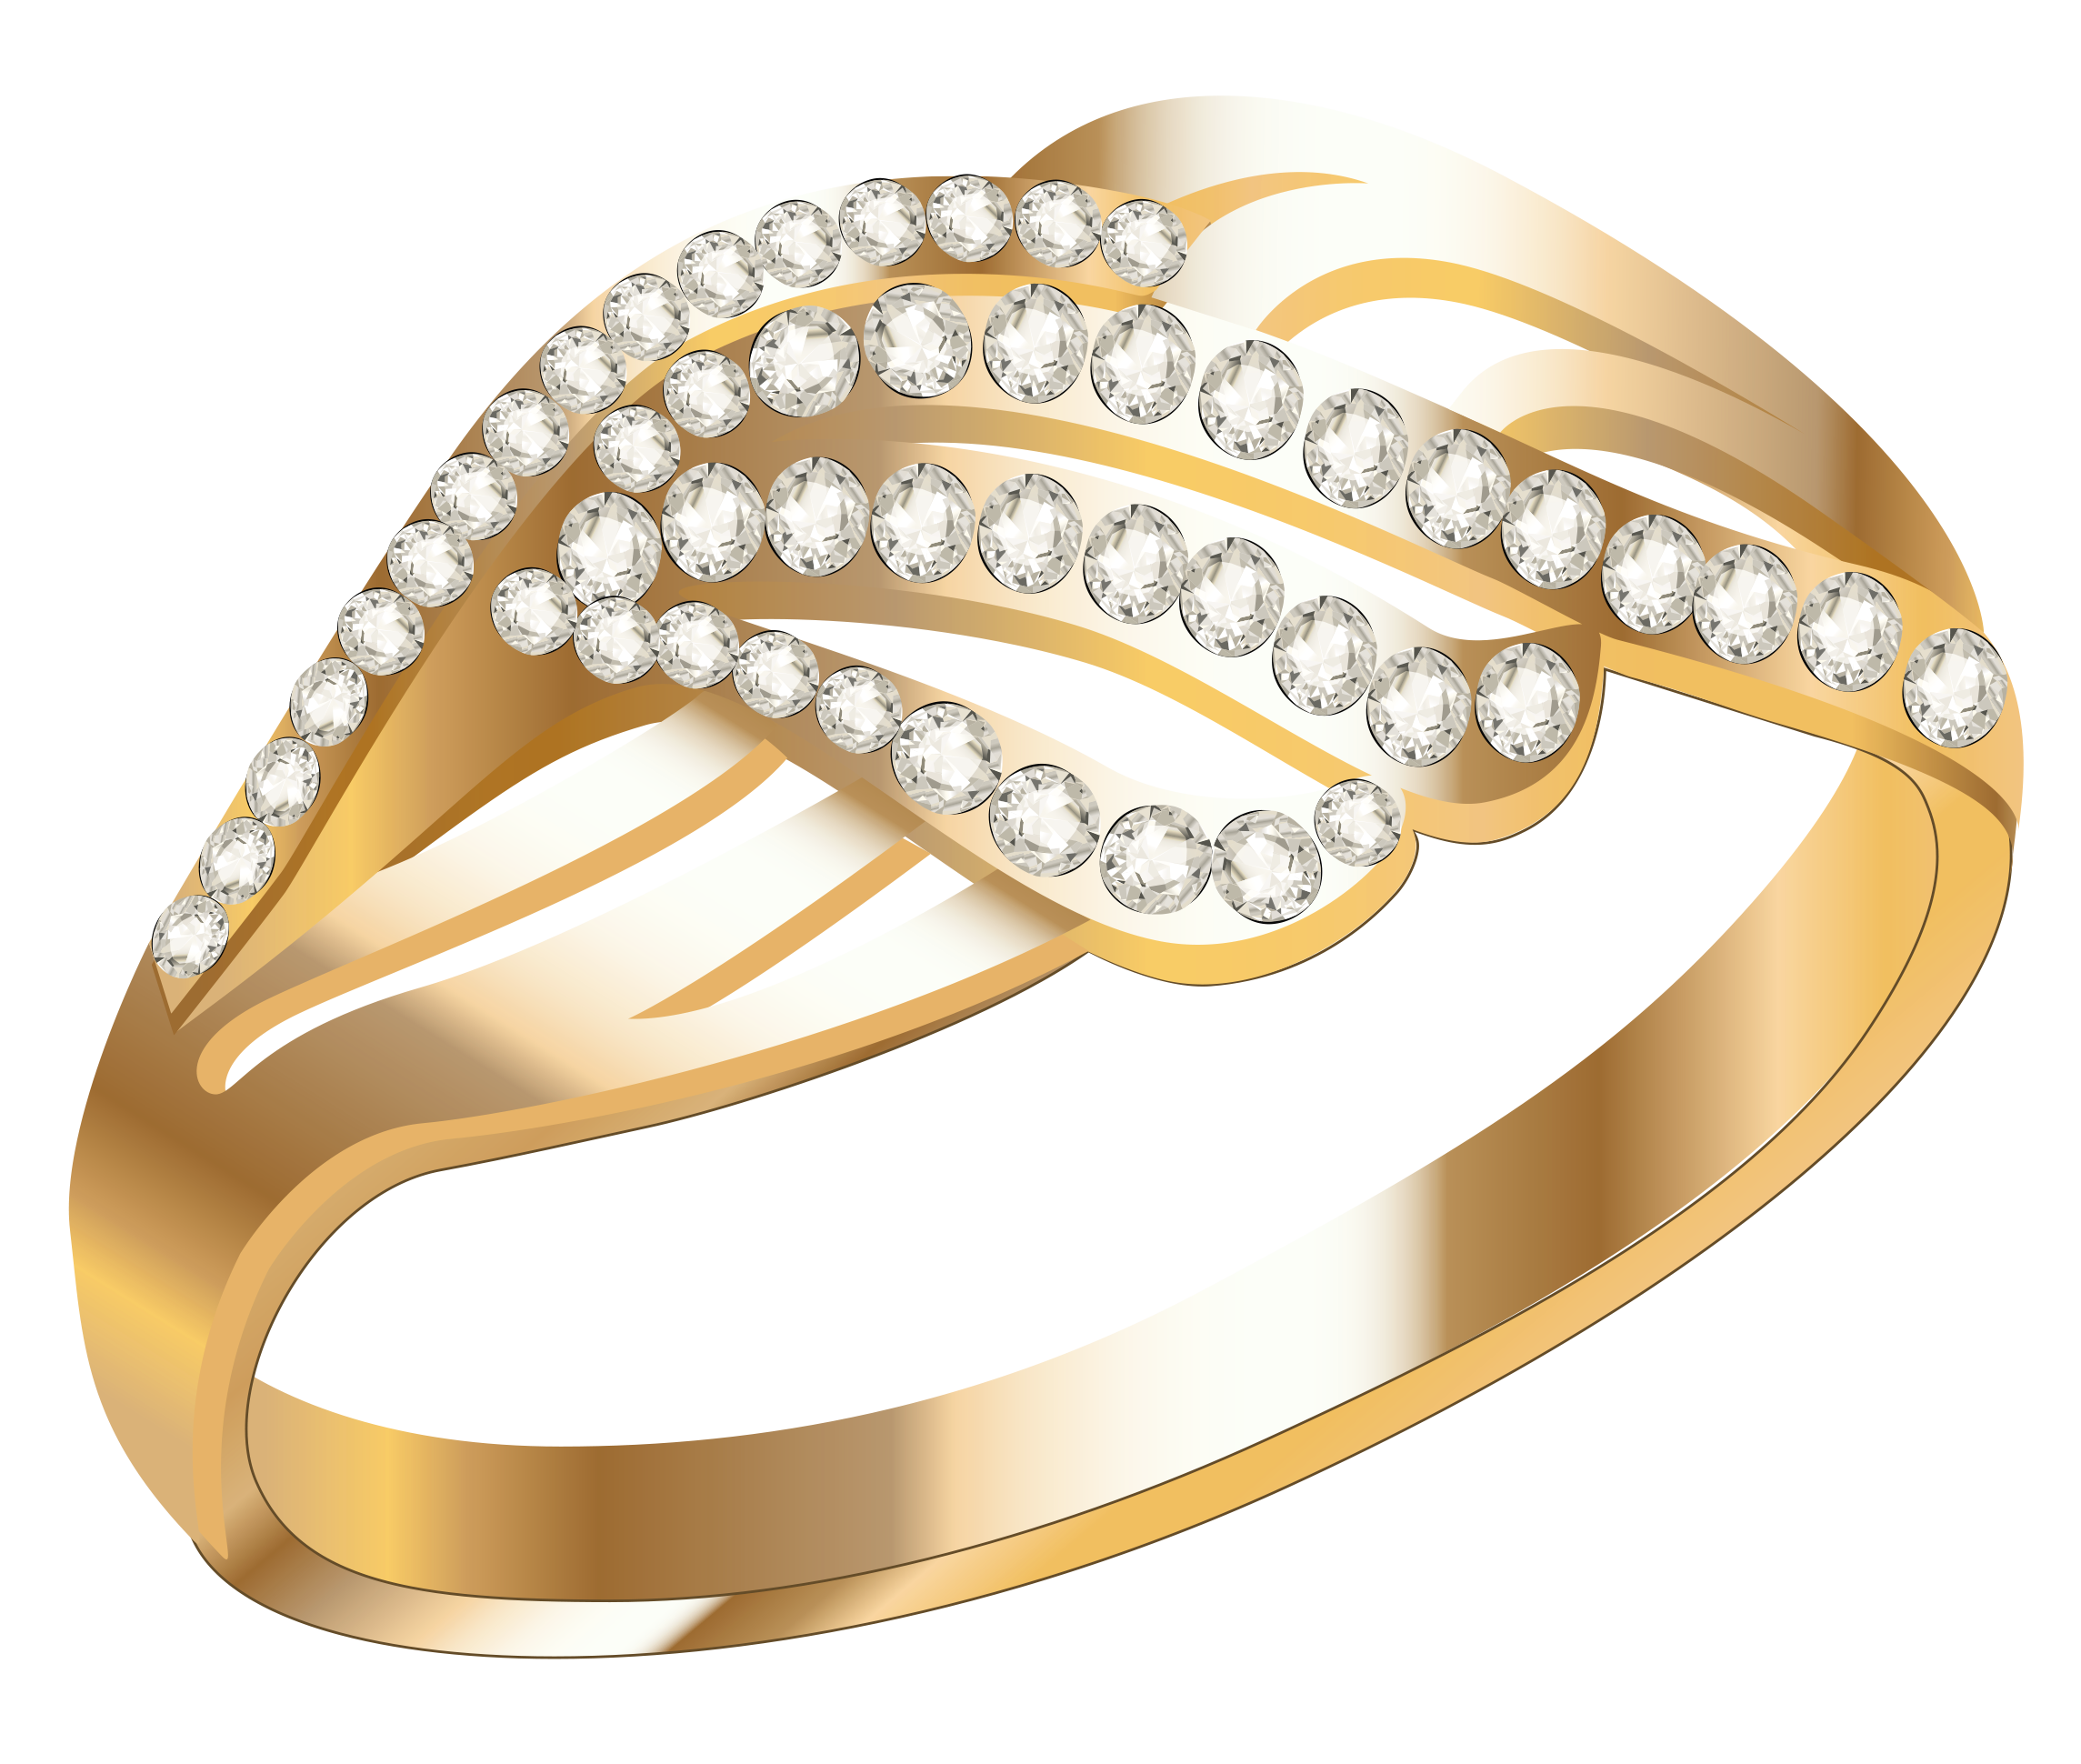 Jewelry gold pencil and. Engagement clipart small ring